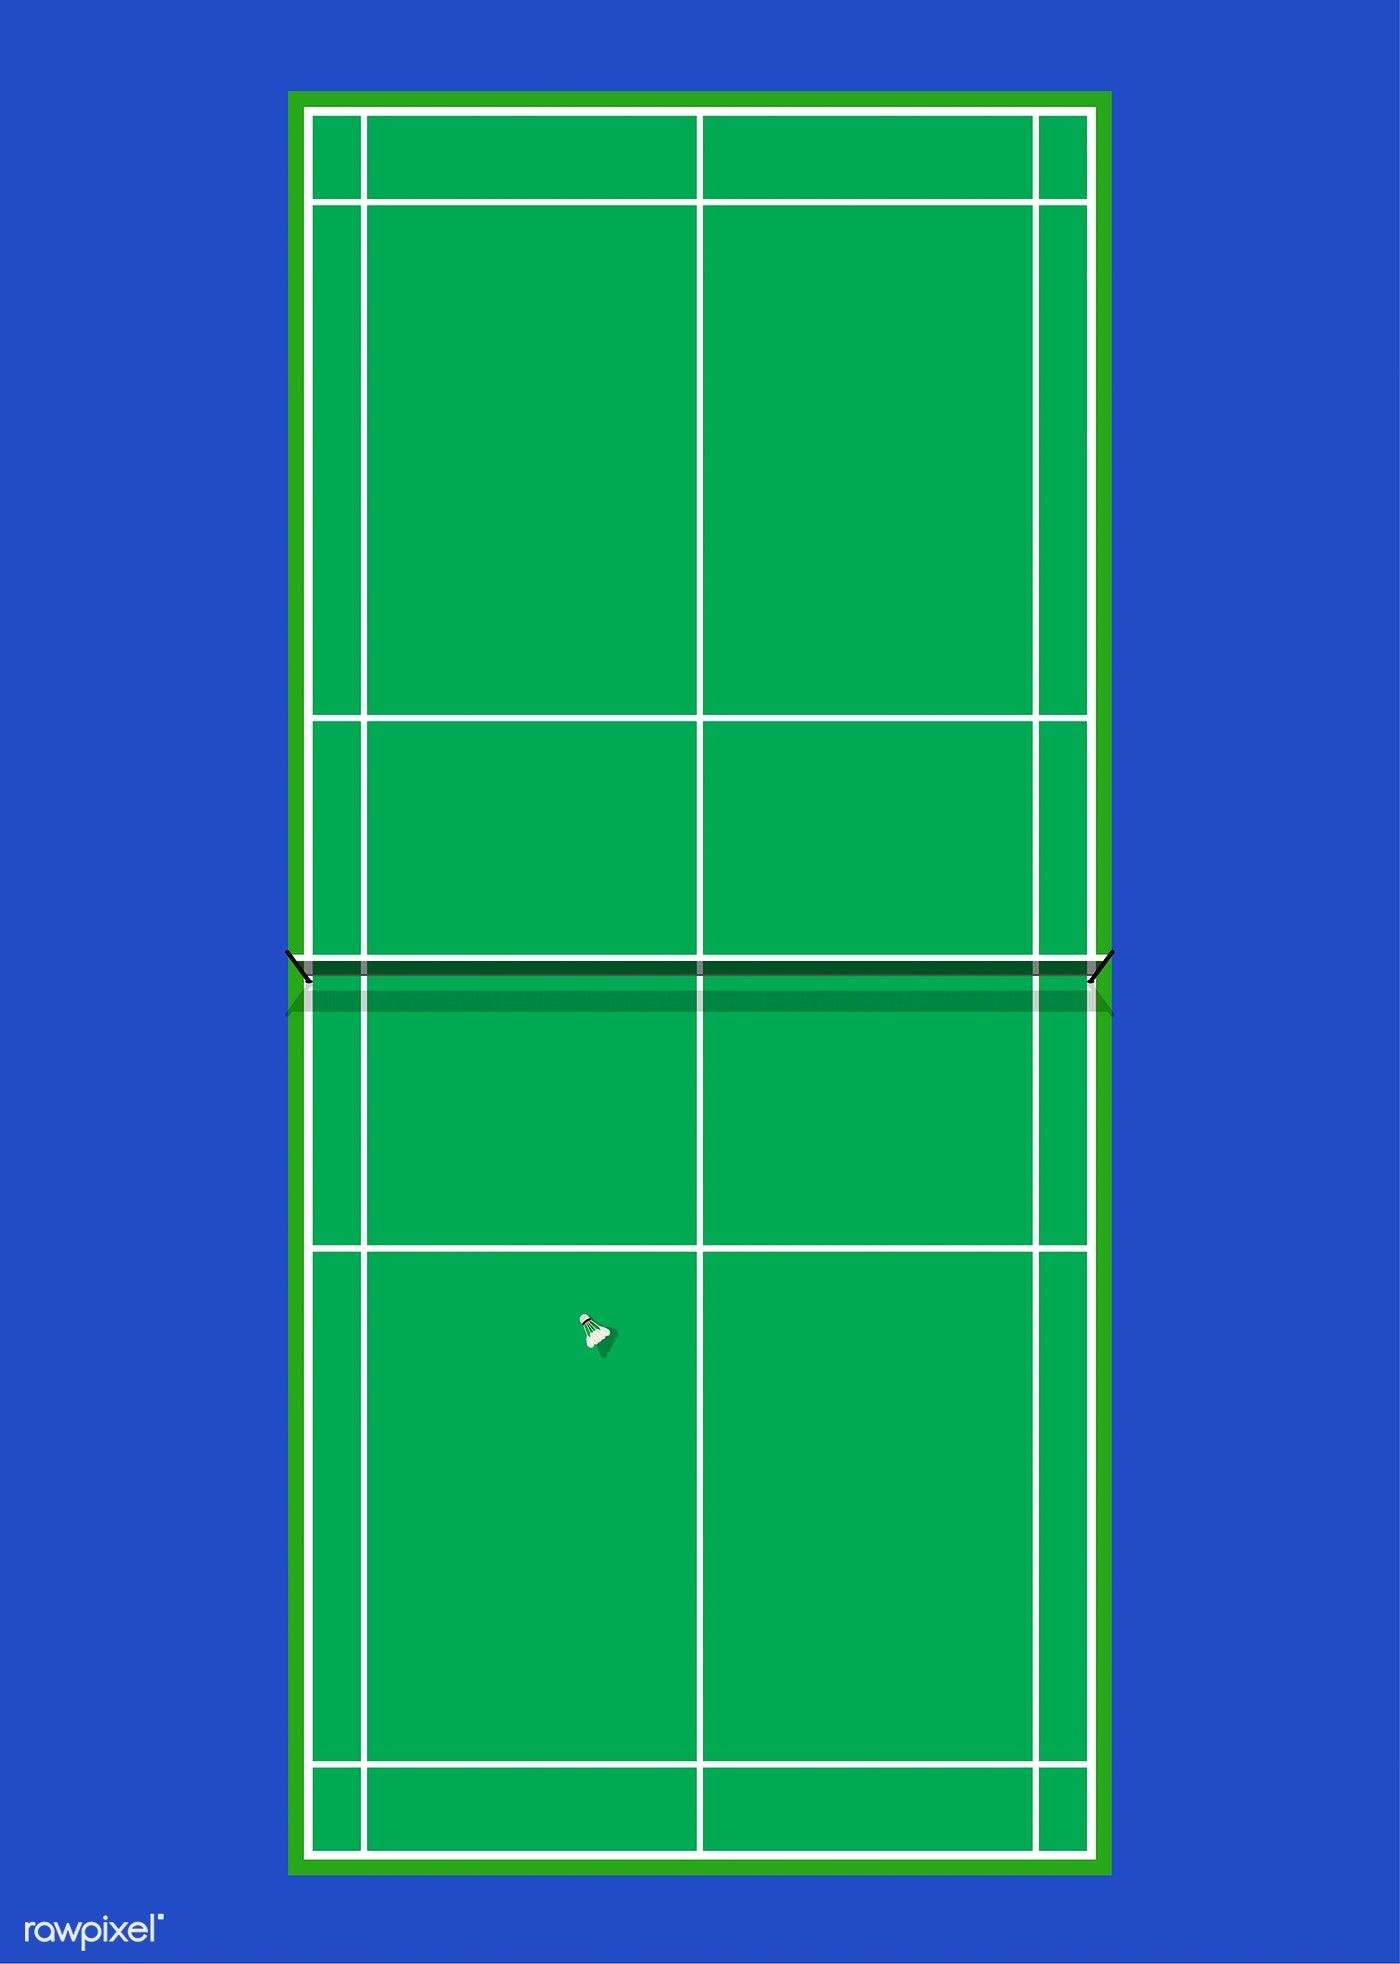 Aerial View Of A Badminton Court Free Image By Rawpixel Com Aew In 2020 Badminton Court Badminton Badminton Logo